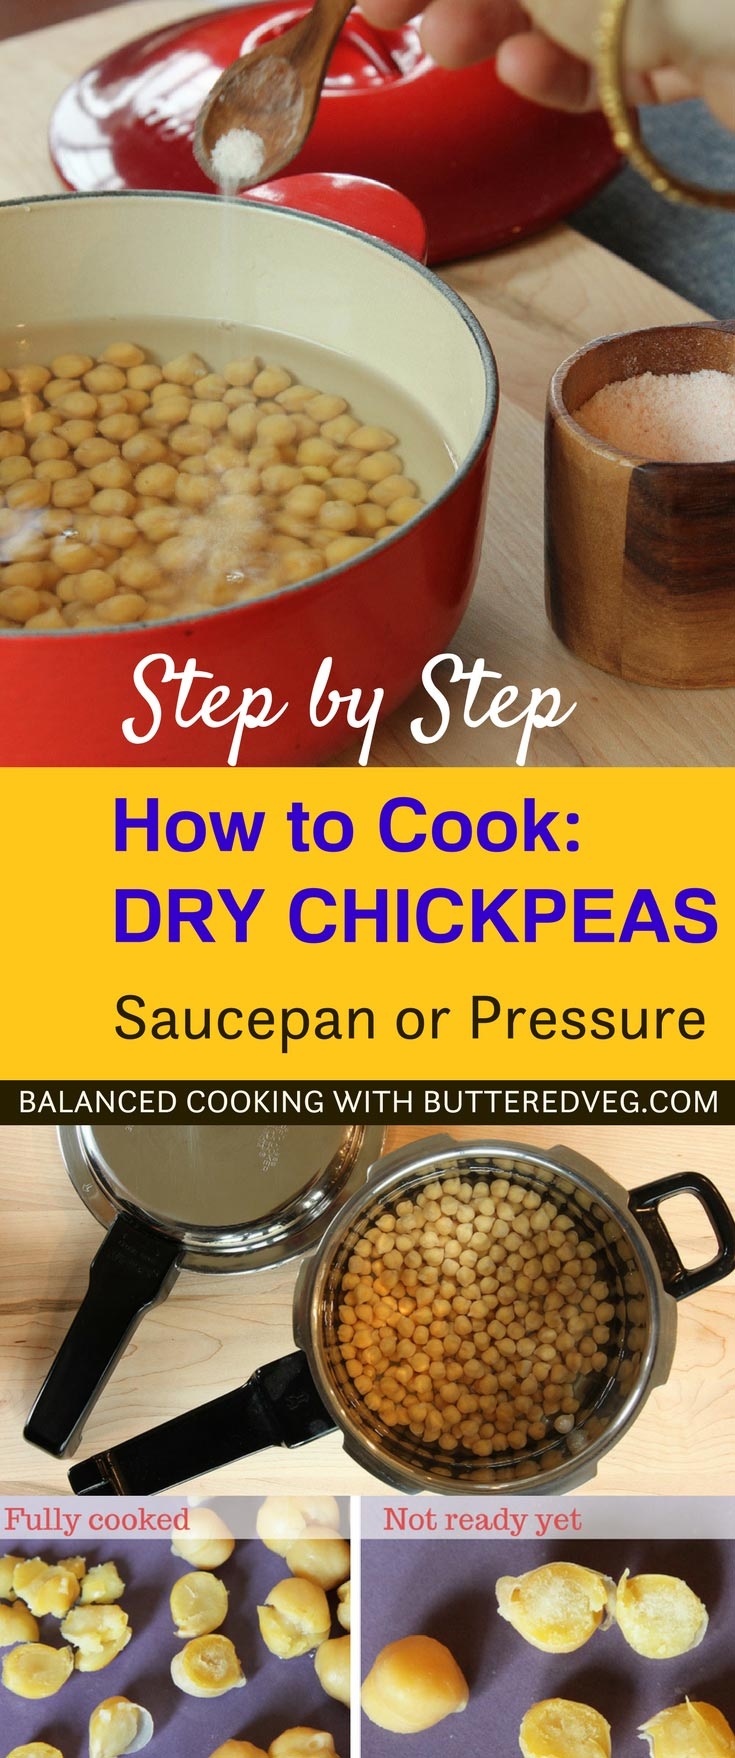 How To Cook Dry Chickpeas From Scratch